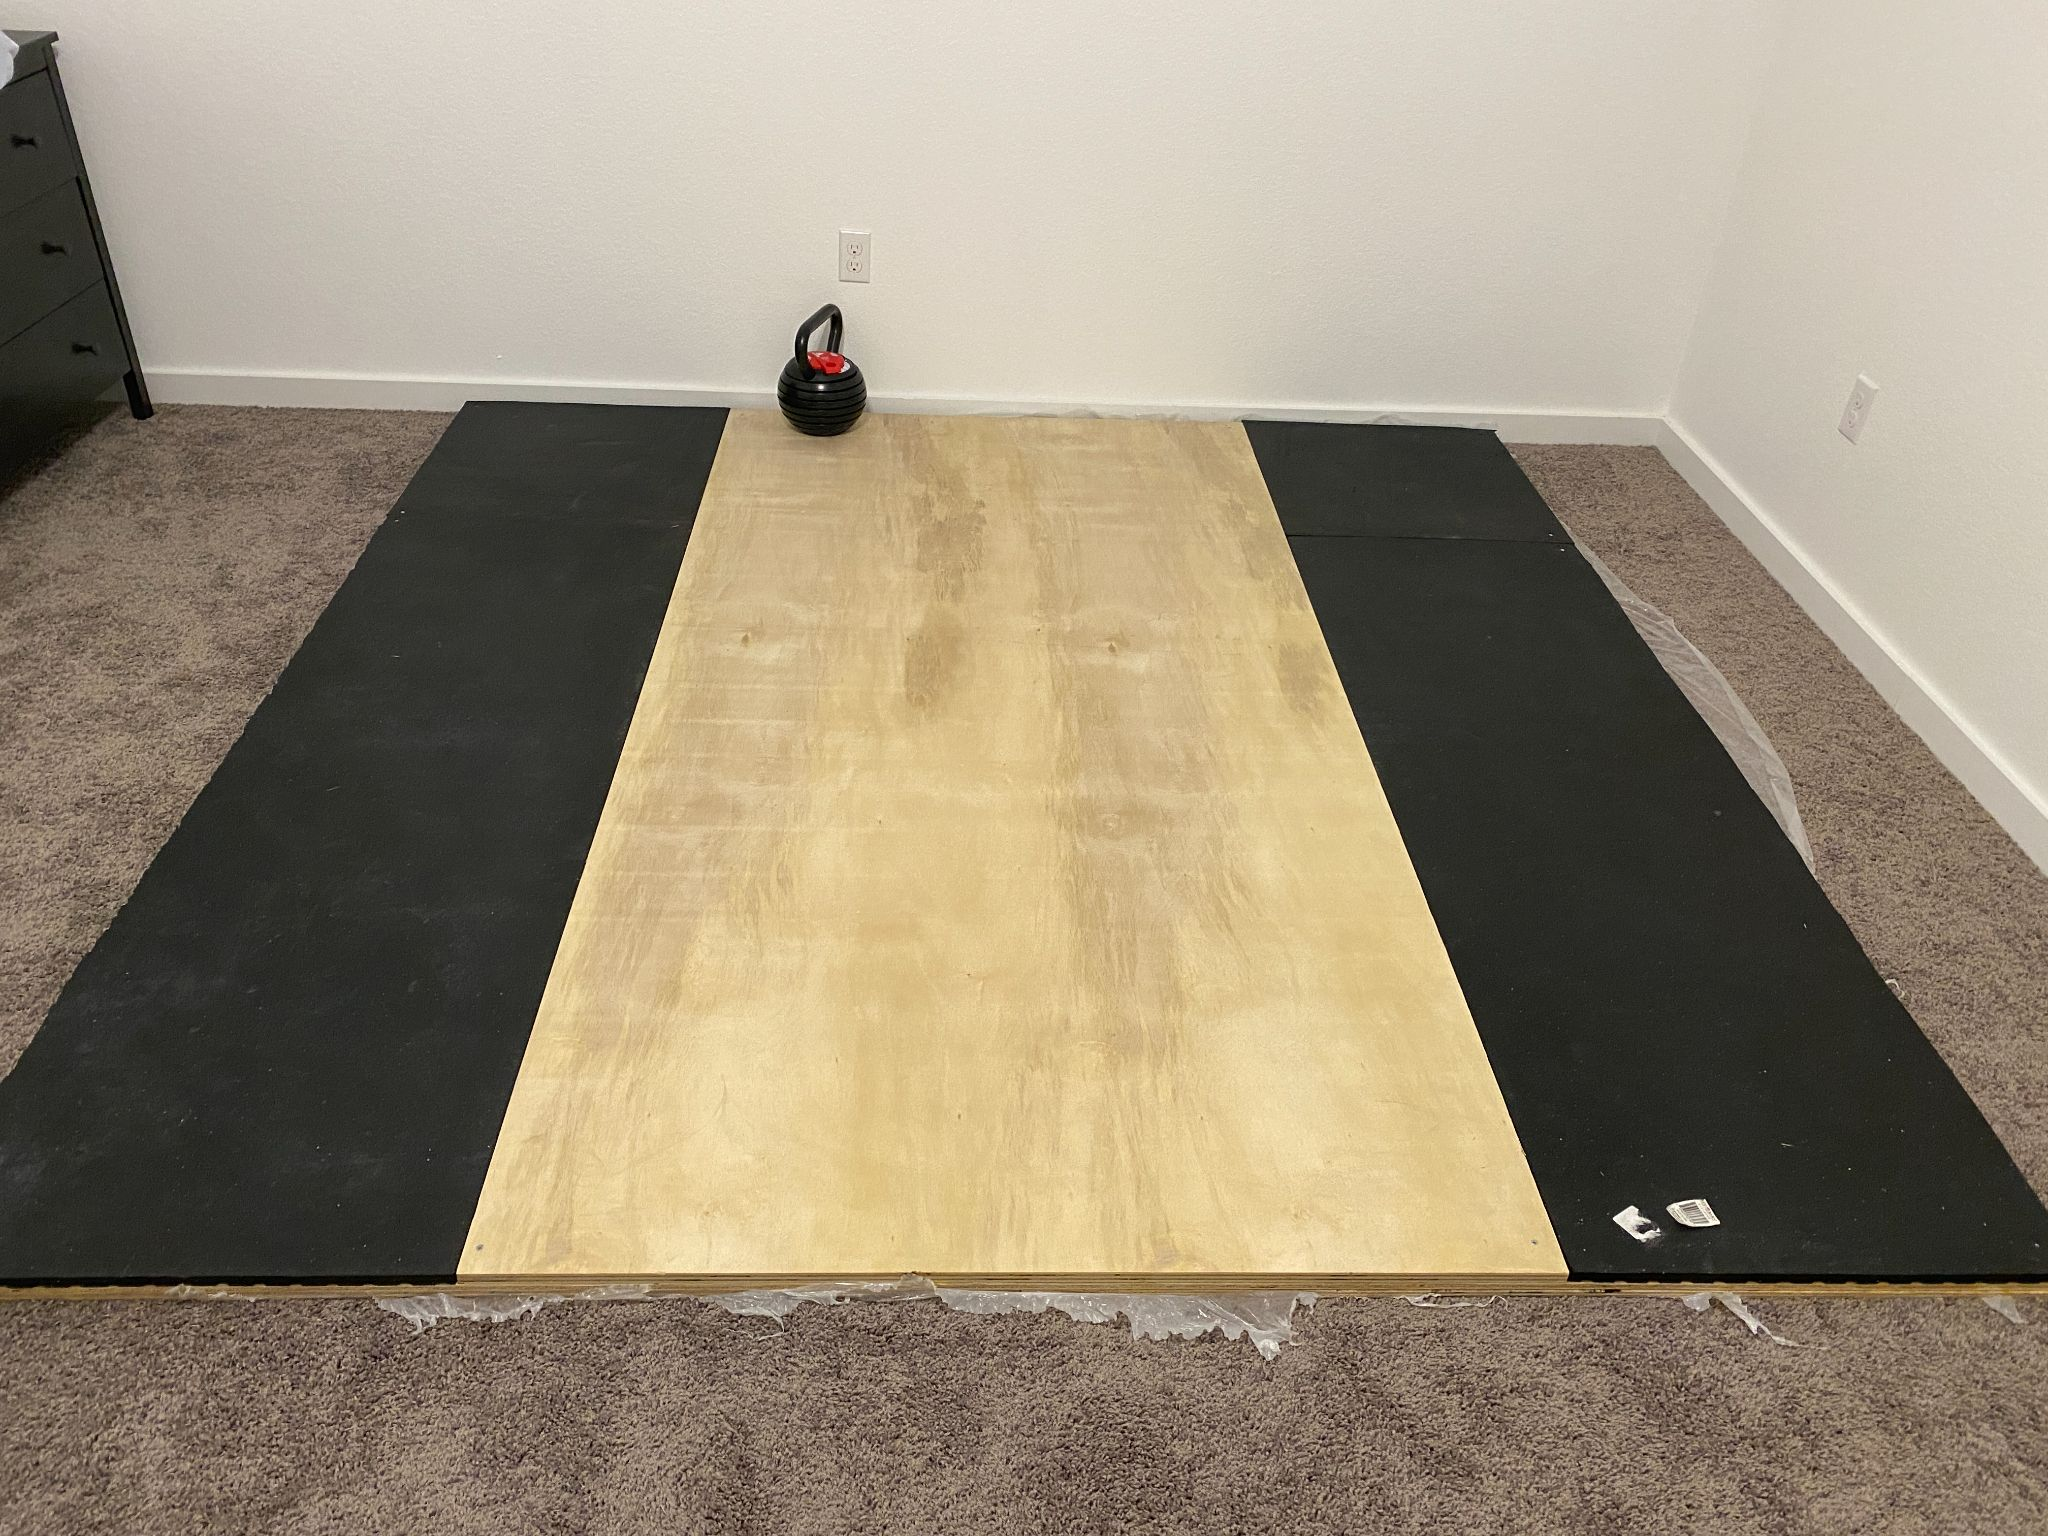 How we have used horse stall mats to create our weightlifting platform